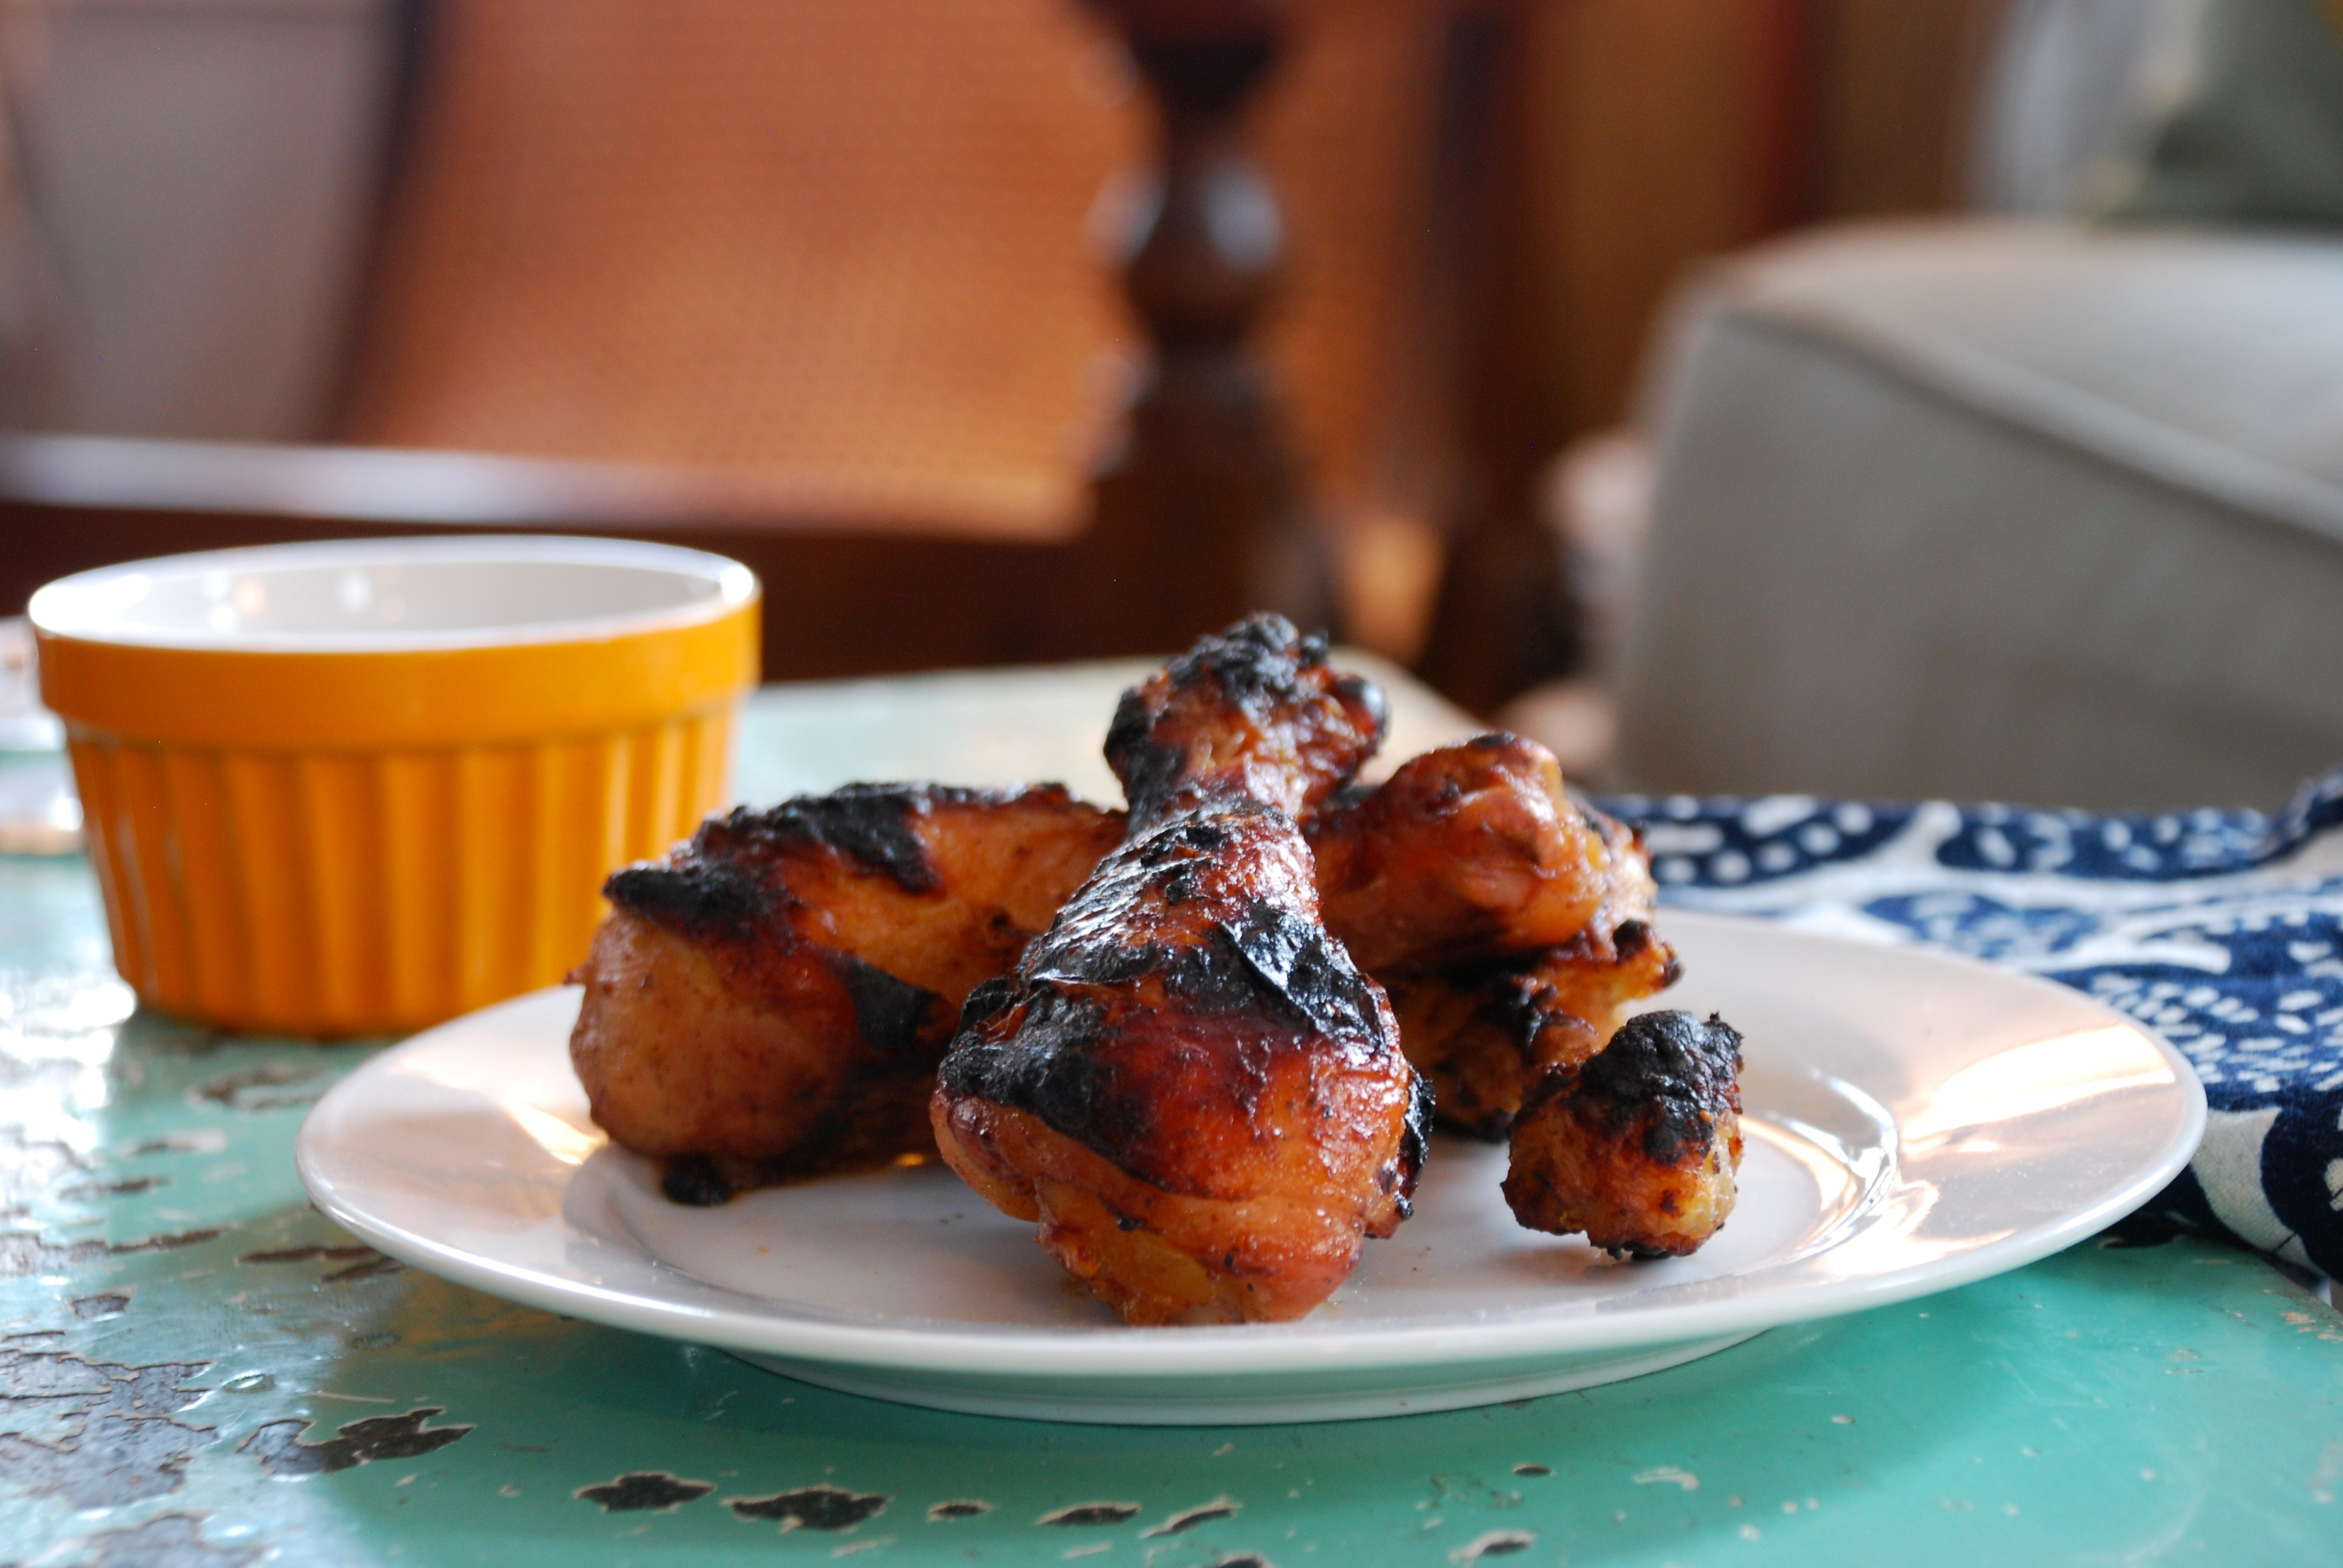 Orange-Maple Chicken Drumsticks with Orange-Gorgonzola Dipping Sauce